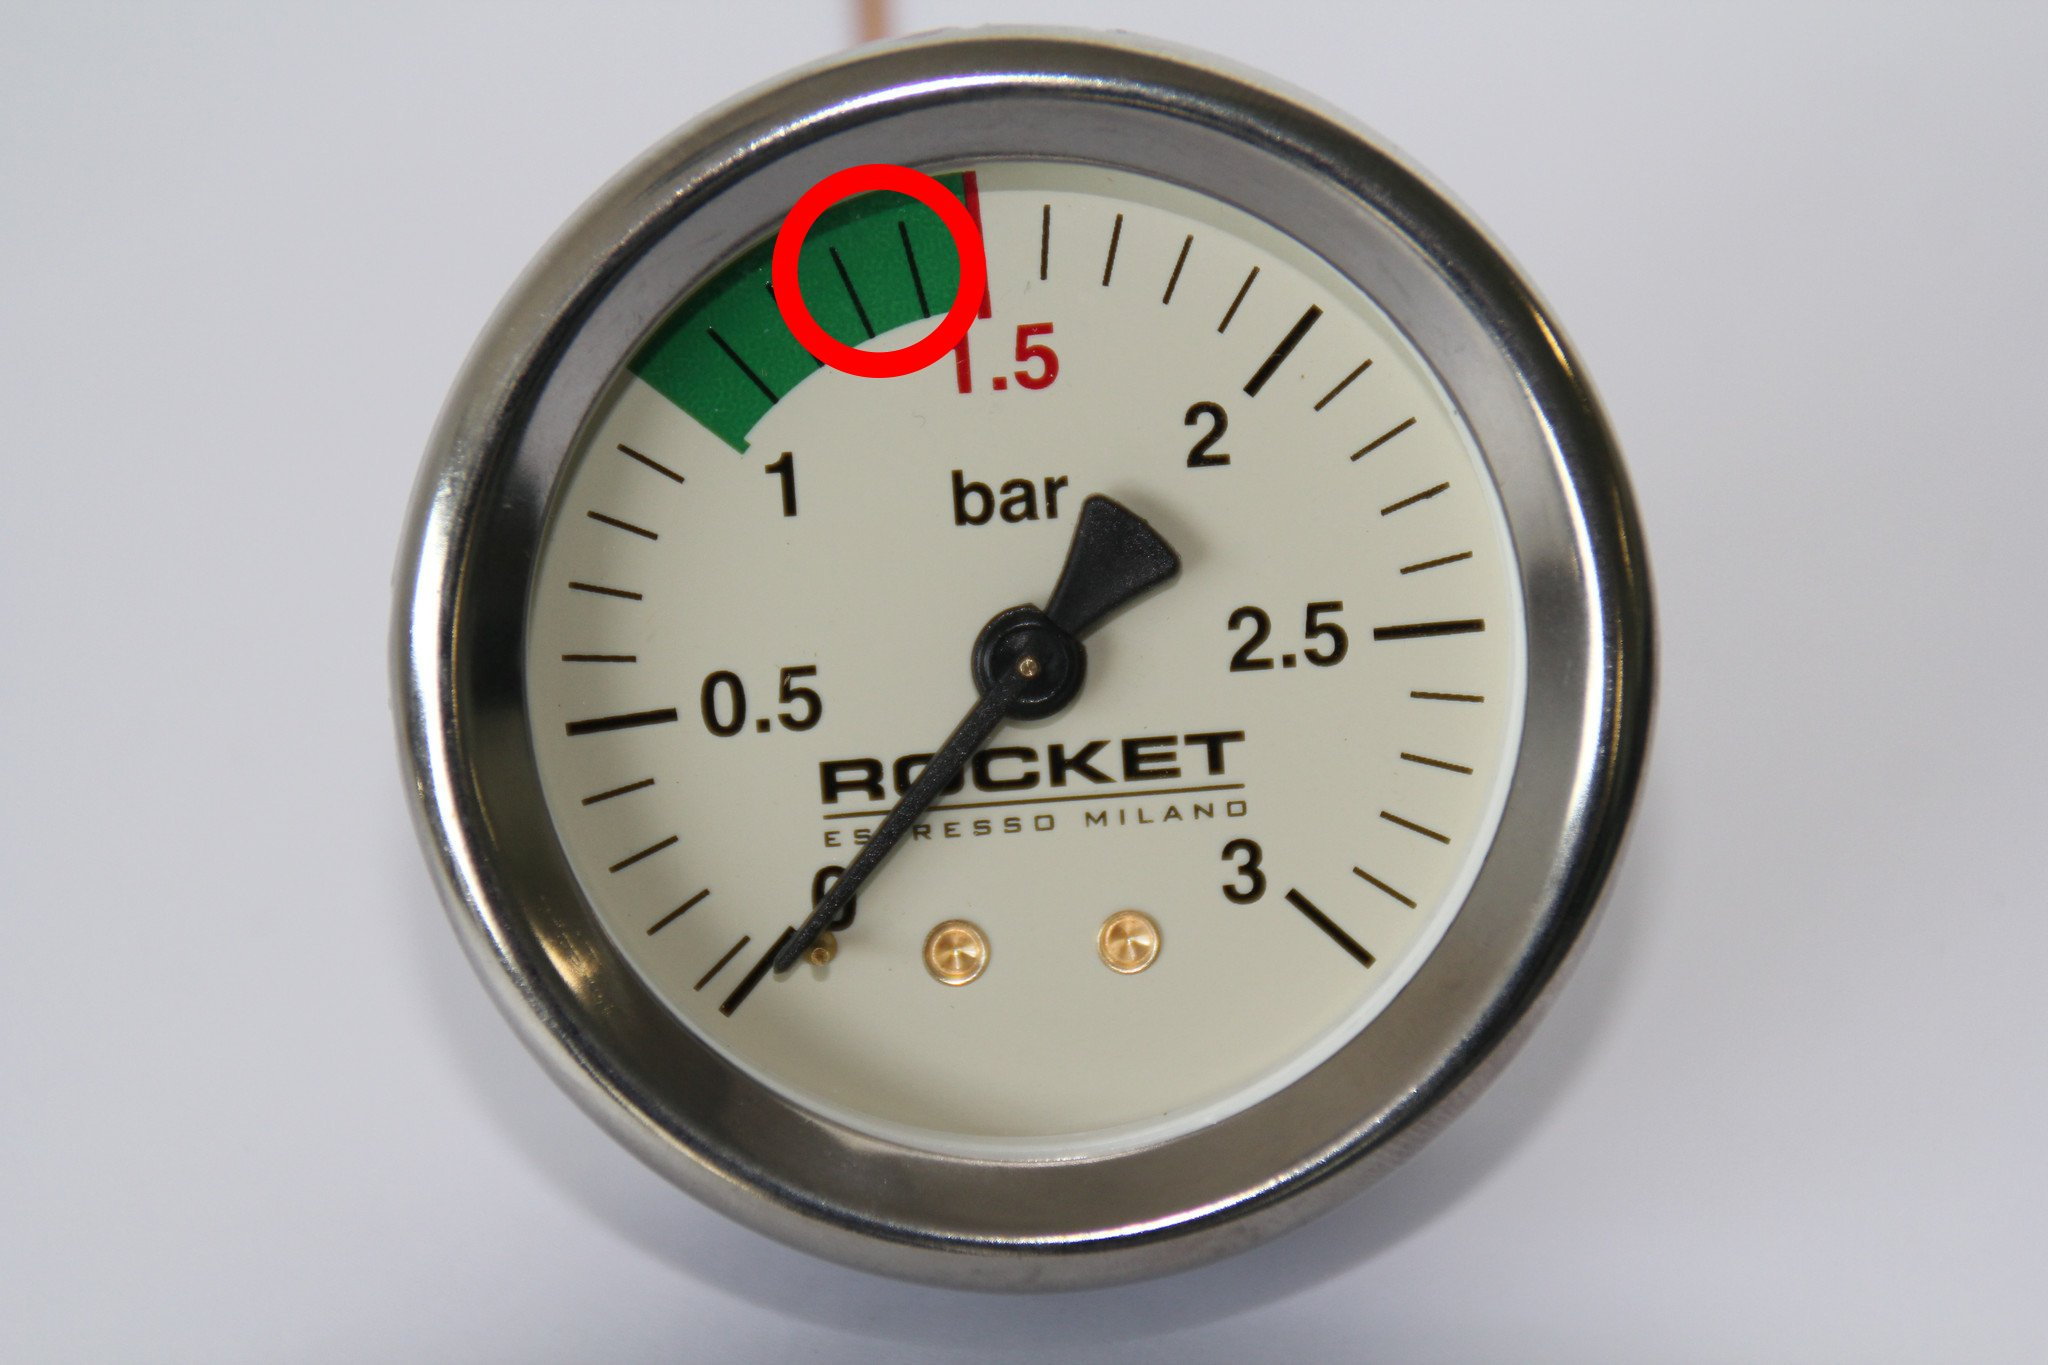 The pressure gauge can help you identify why you have a boiler leaking water